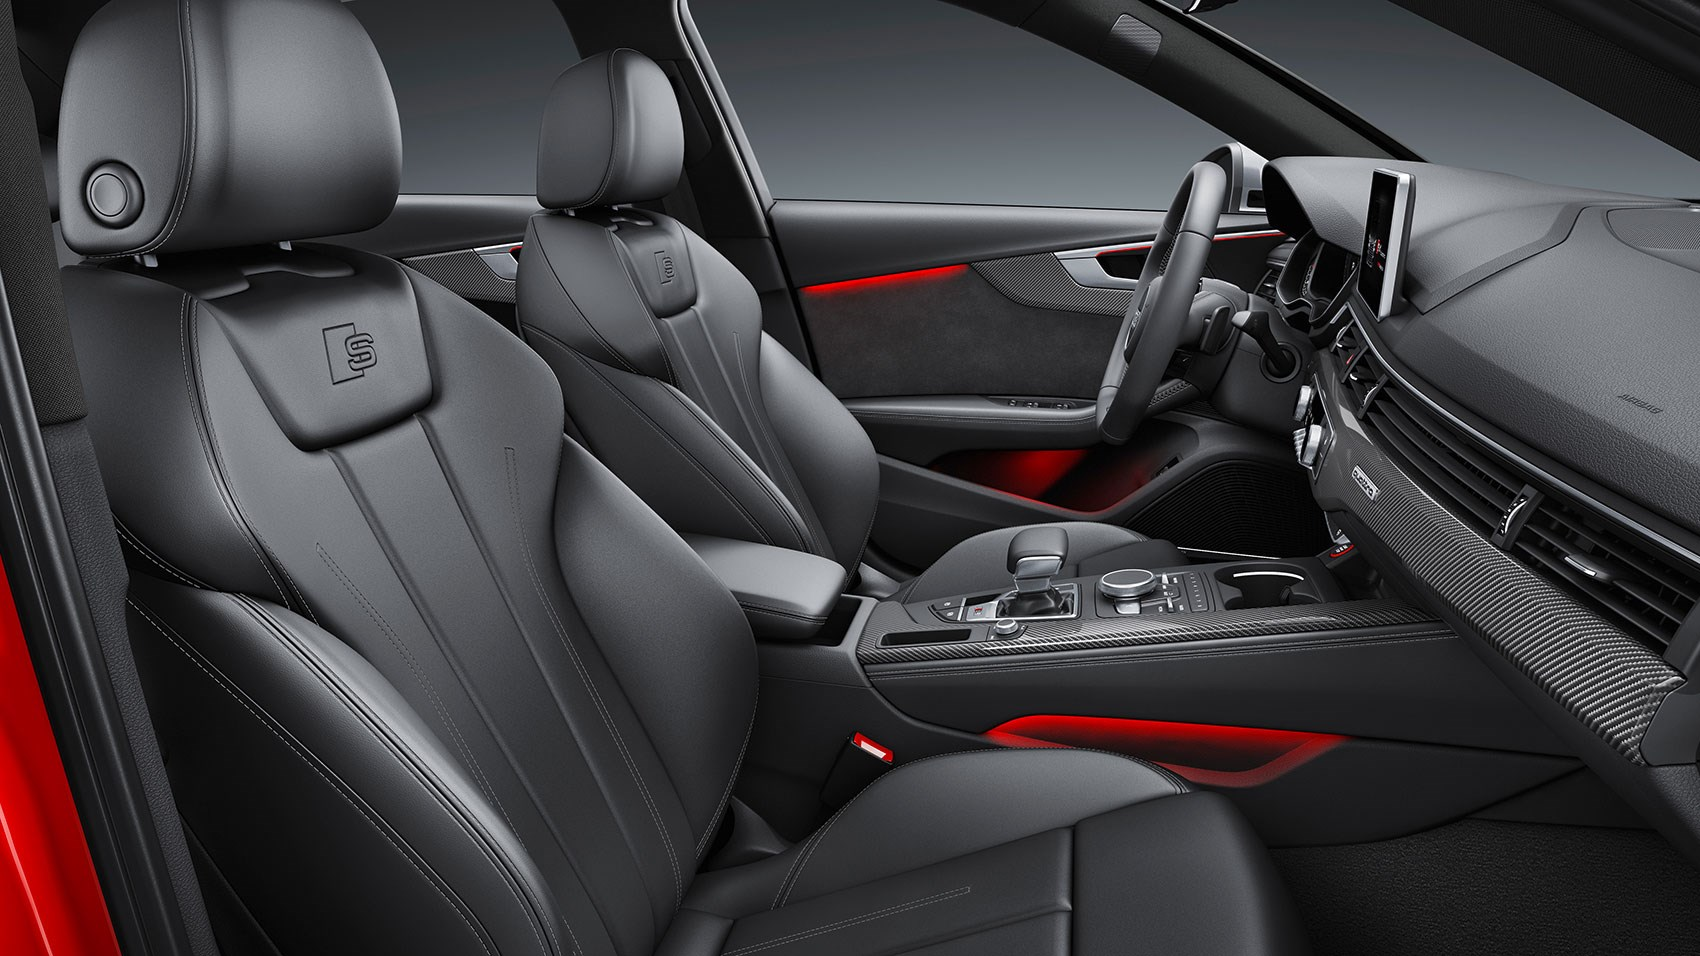 Audi S4 Not Full On Racing Buckets But Supportive Sports Seats In